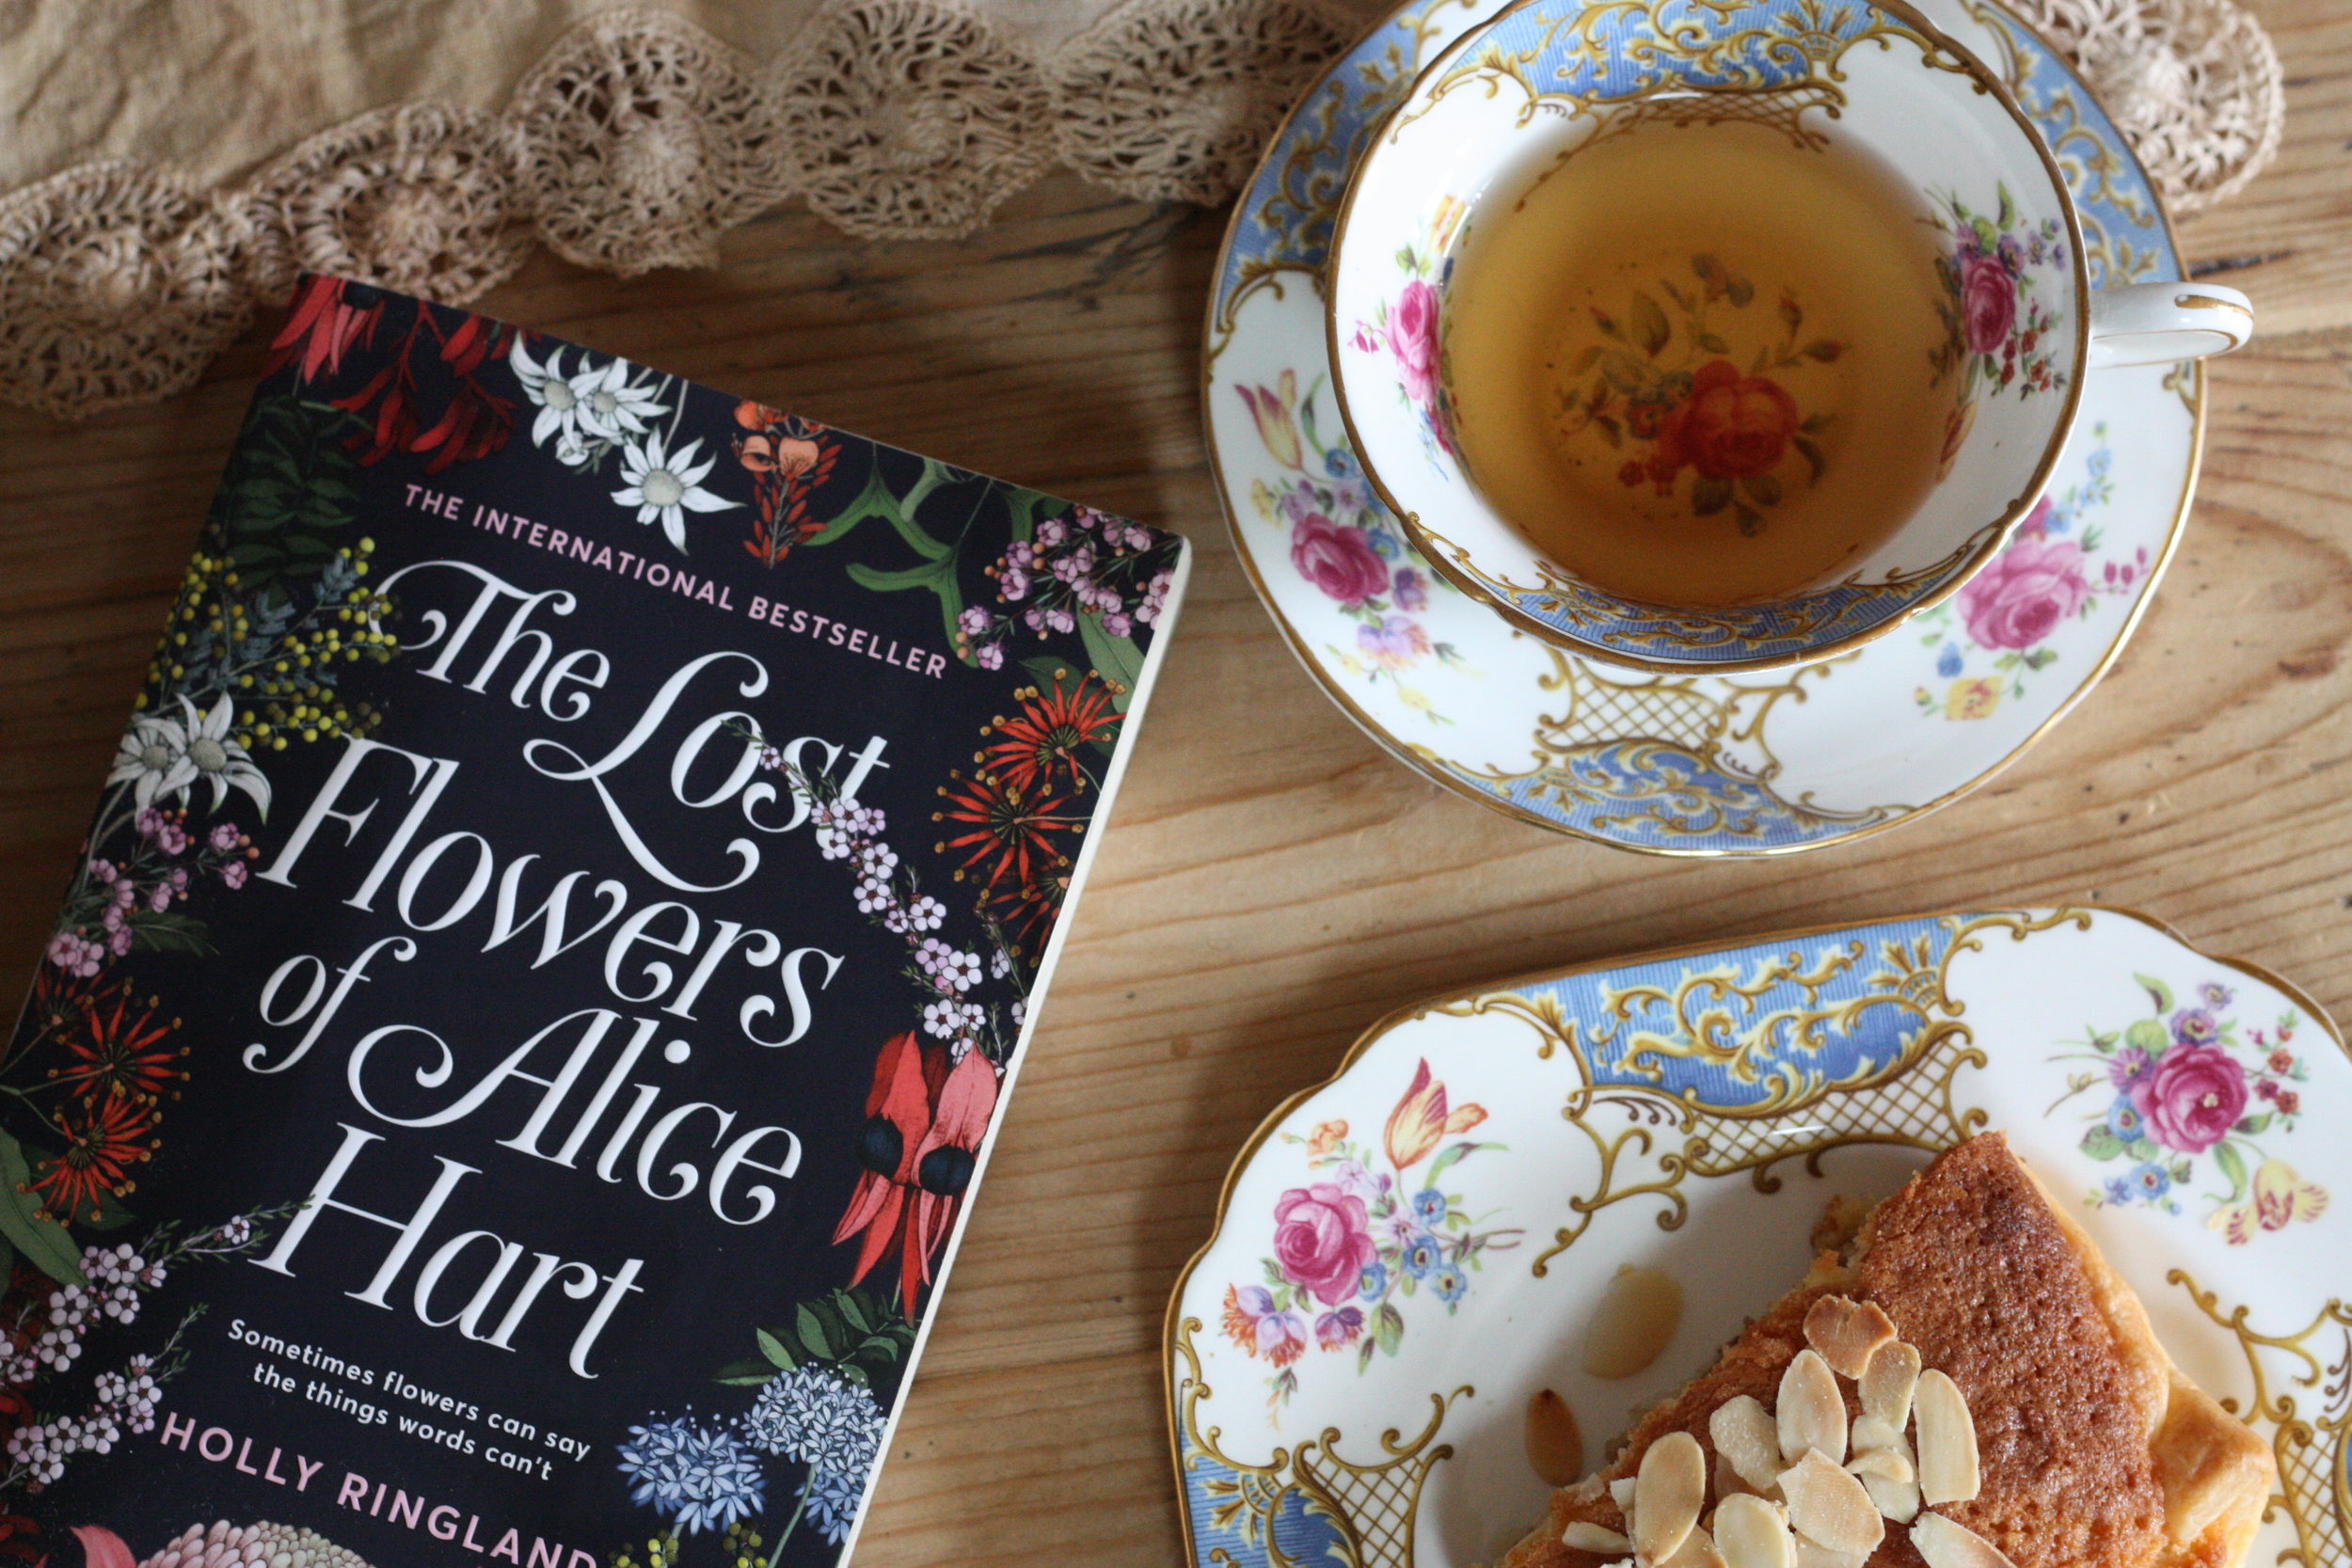 Books should always be accompanied by tea and homemade cake where possible.